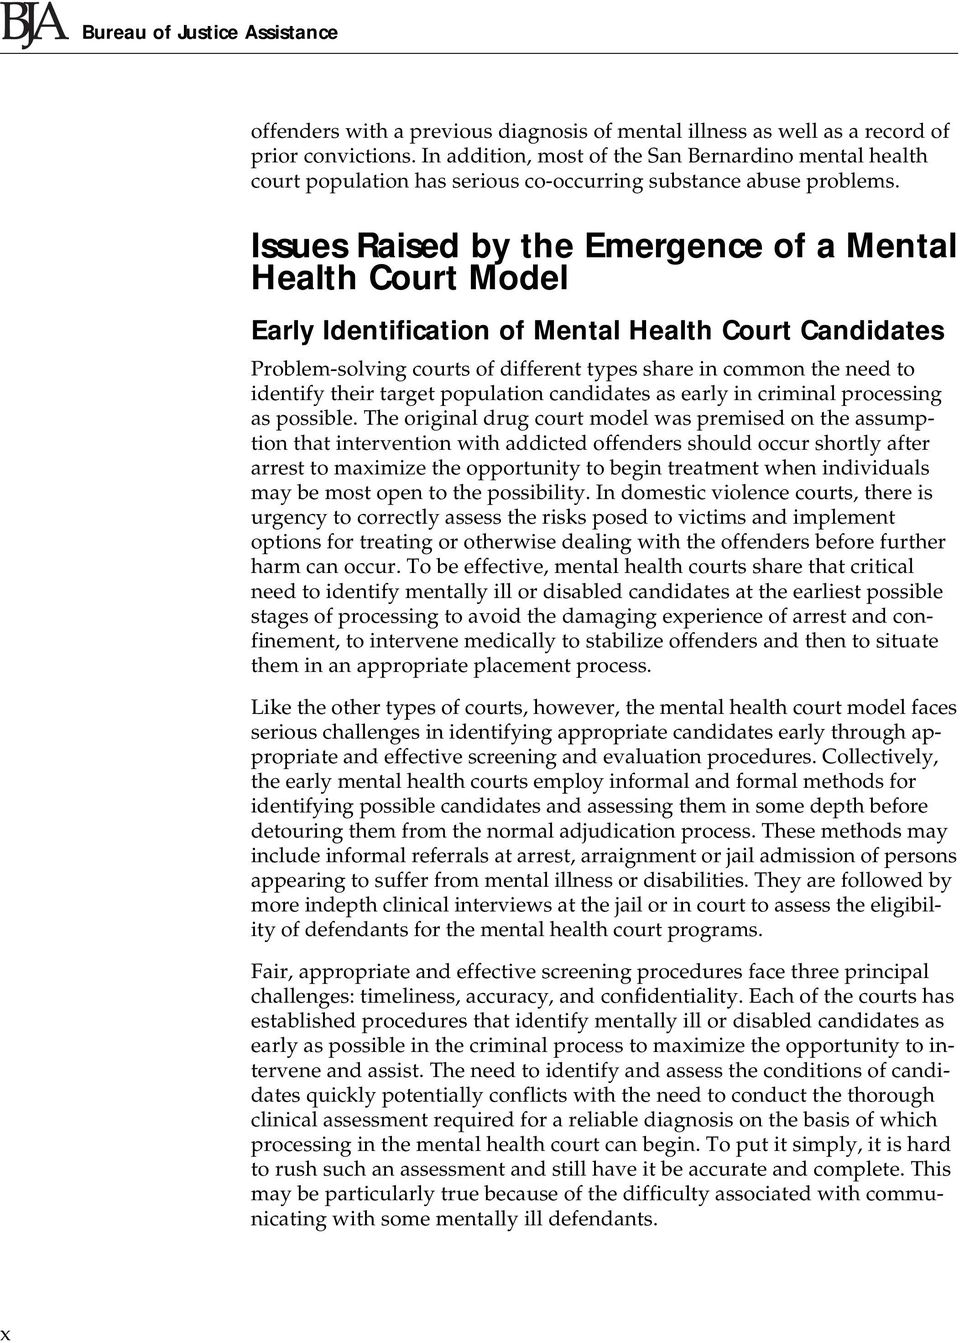 Issues Raised by the Emergence of a Mental Health Court Model Early Identification of Mental Health Court Candidates Problem-solving courts of different types share in common the need to identify